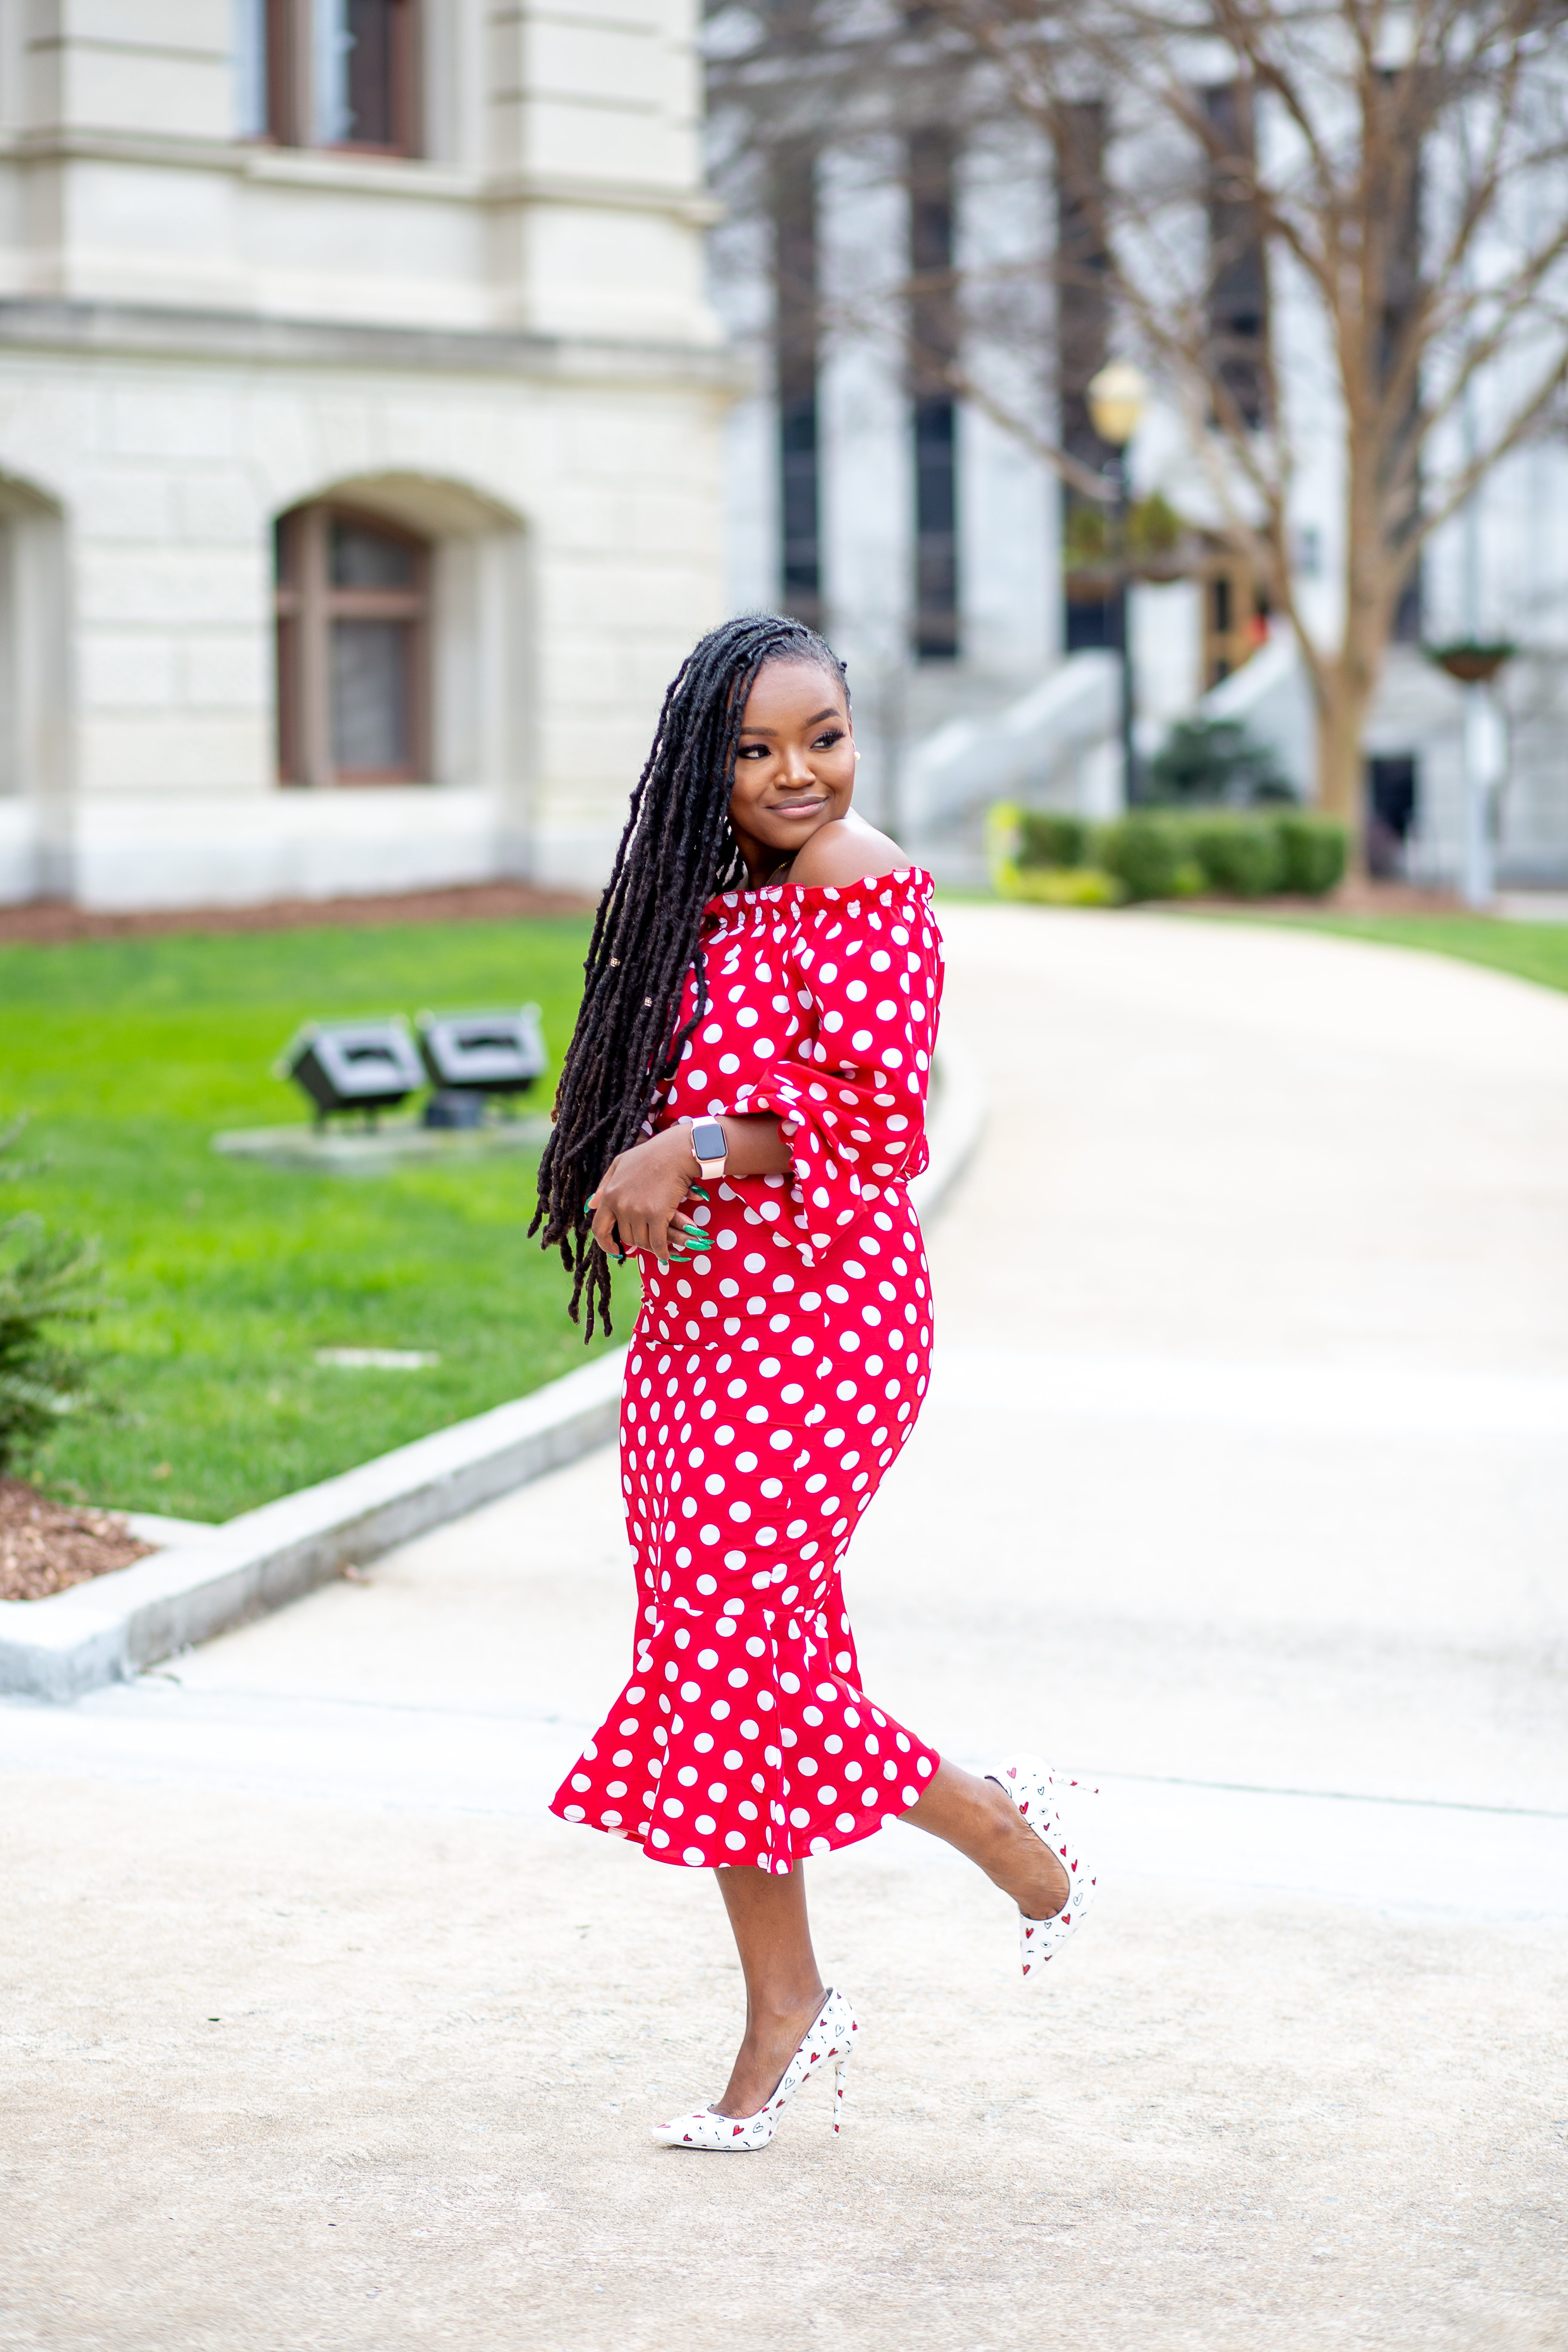 CUTE SPRING READY POLKA DOTS DRESSES